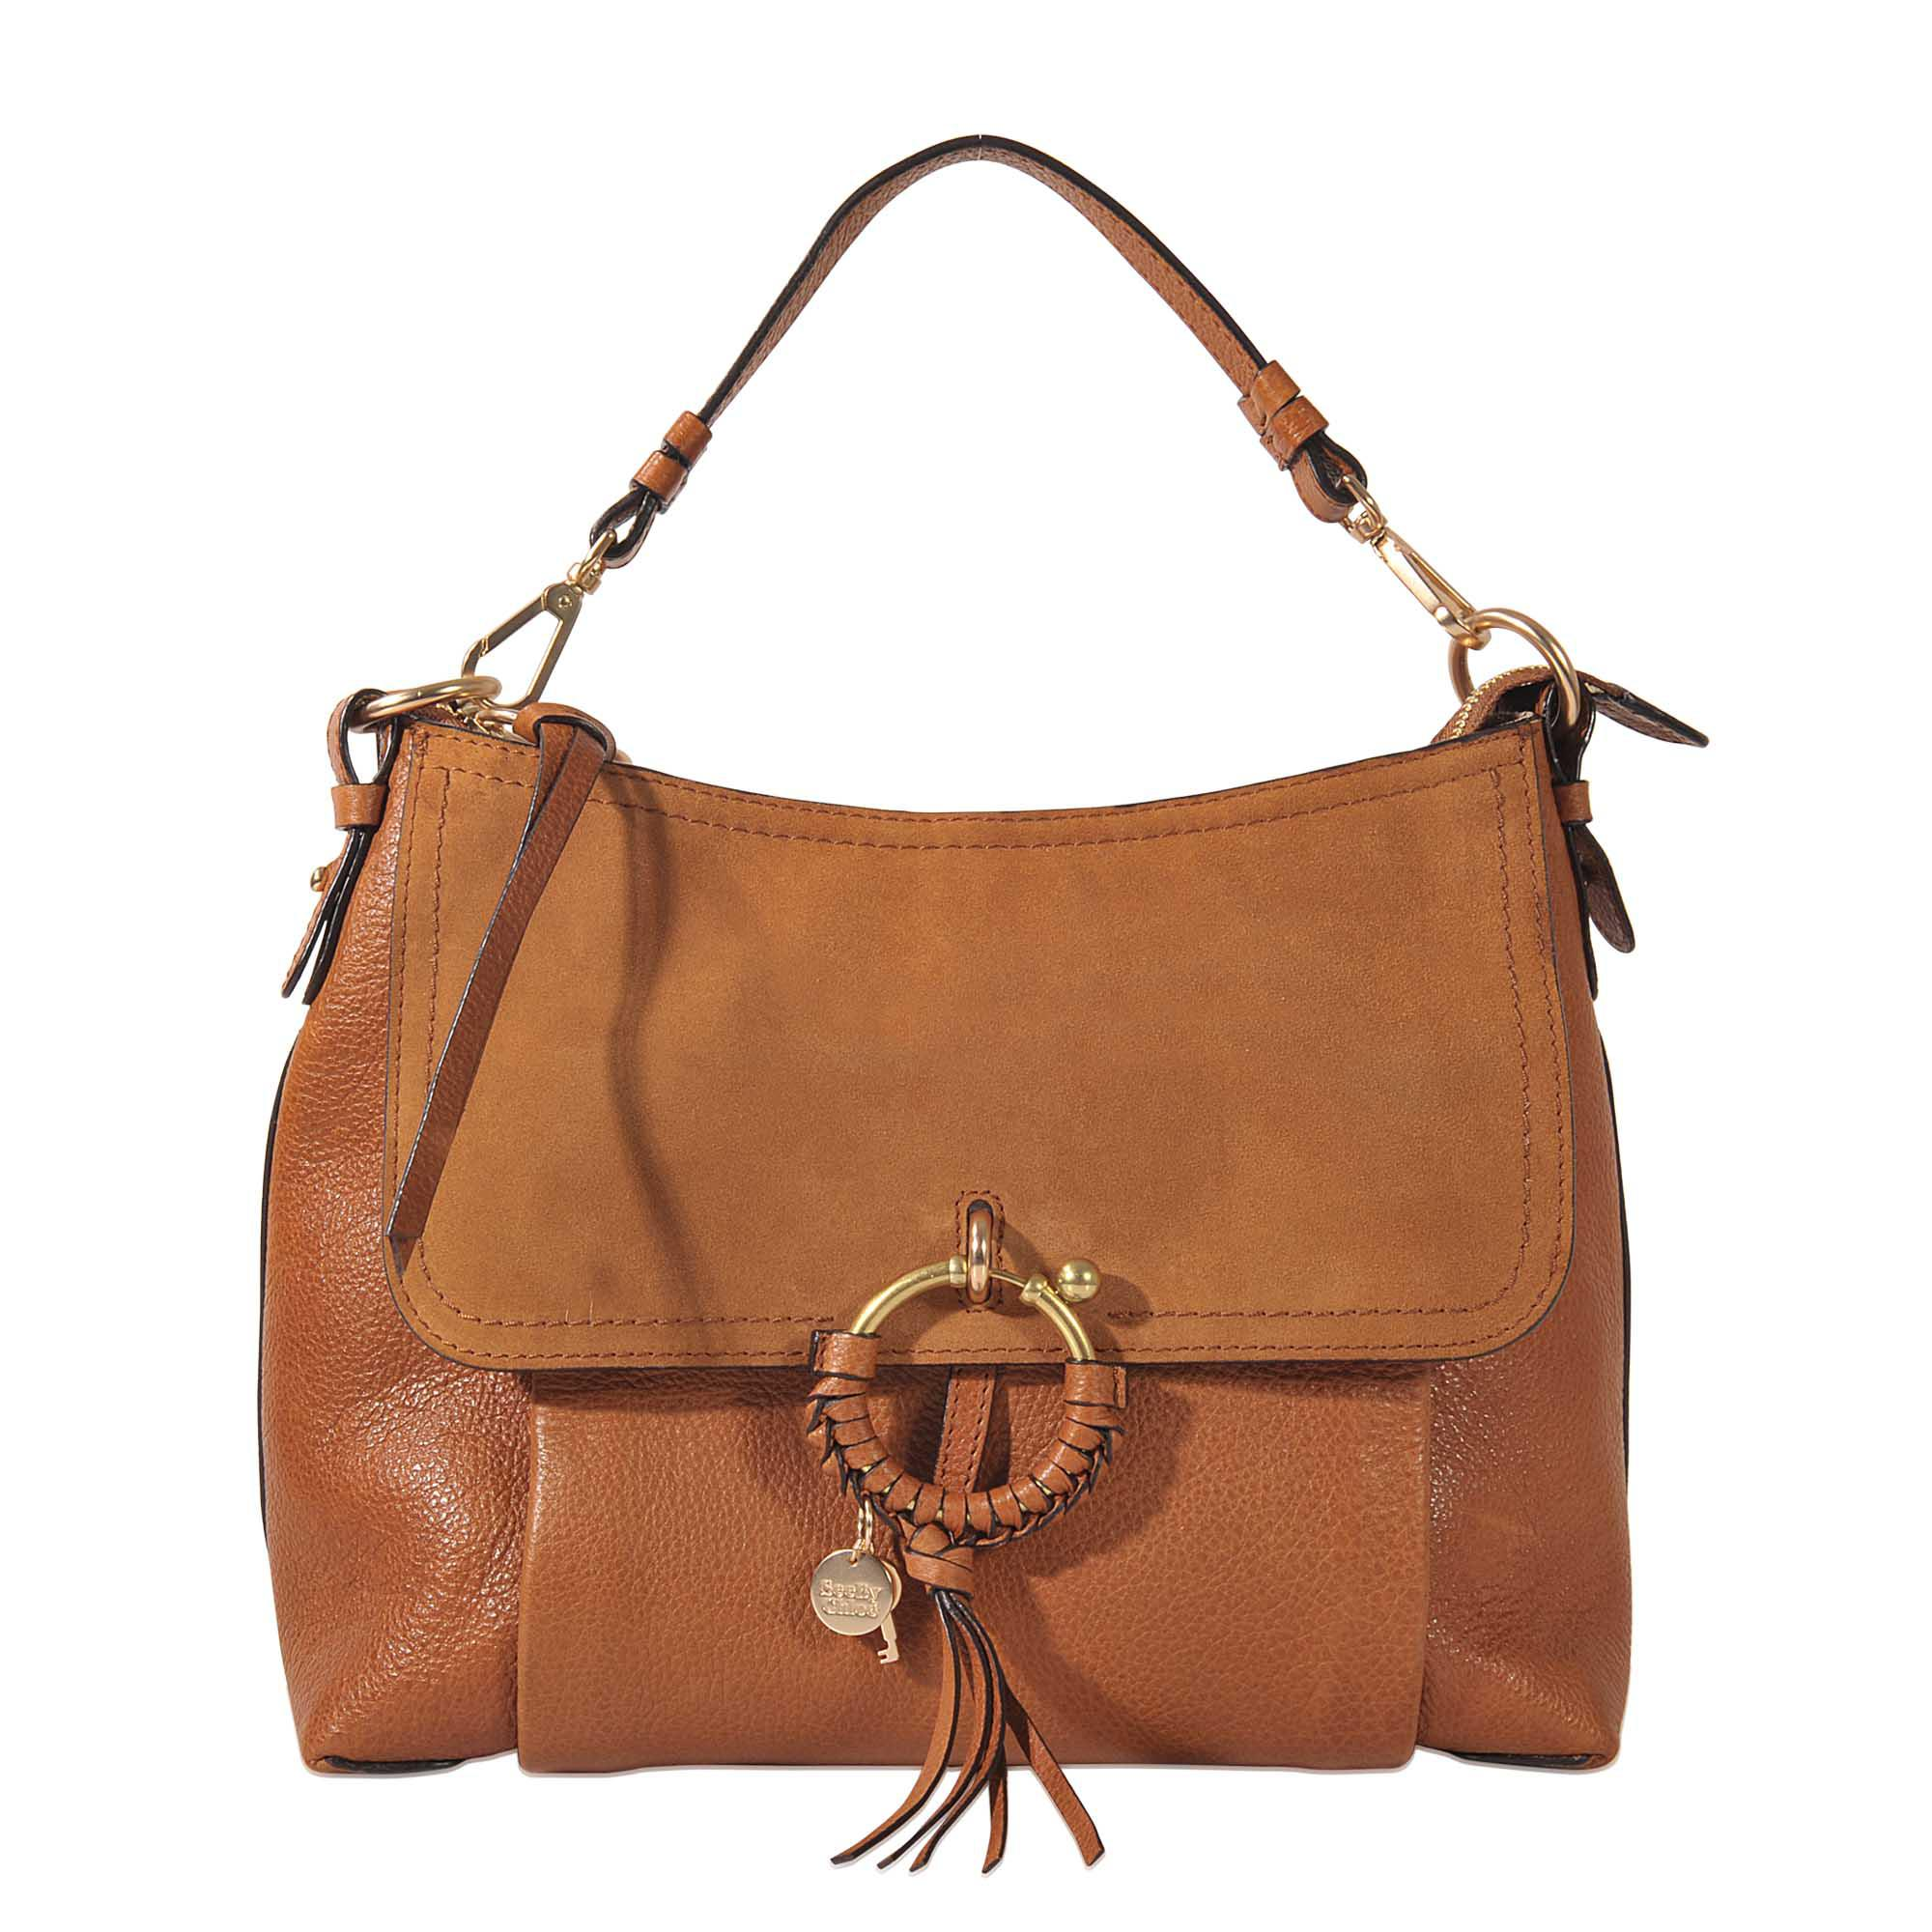 Joan Medium Hobo Bag in Caramelo Leather and Suede See By Chlo XGAbB